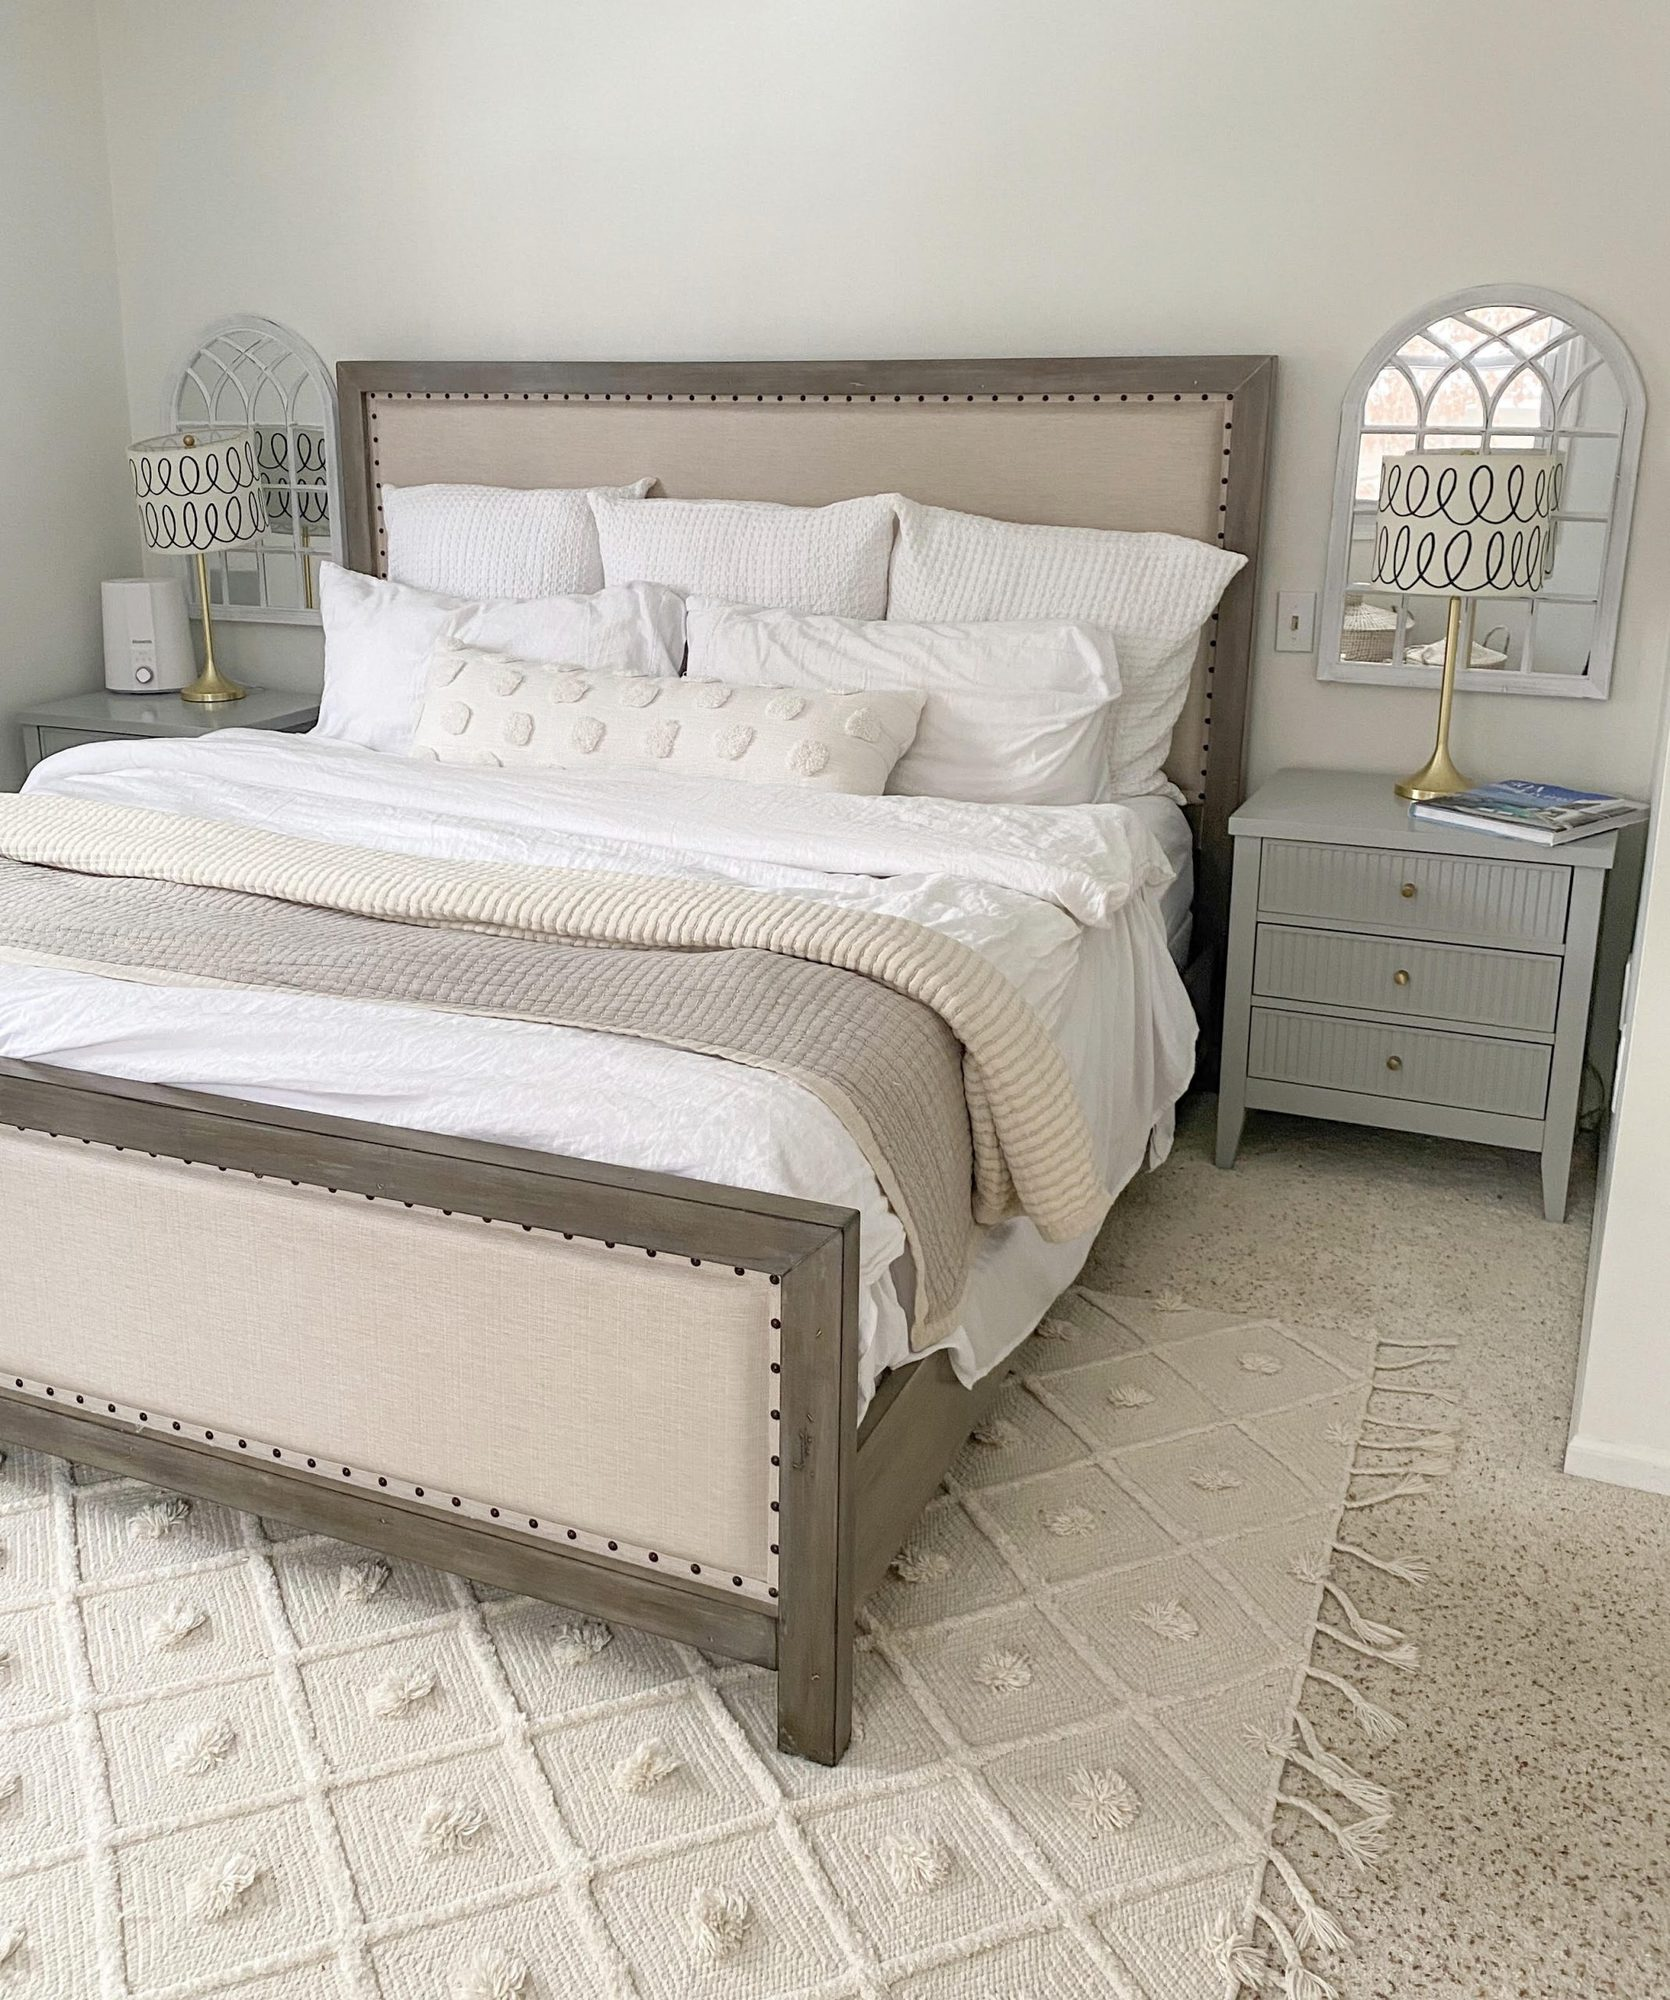 photo of neutral bedroom furniture | Bedside Tables by popular Michigan life and style blog, The House of Navy: image of a master bedroom with cream rug, grey bedside tables, gold lamp stands with white and black lamp shades, and a king size bed with cream and white bedding.